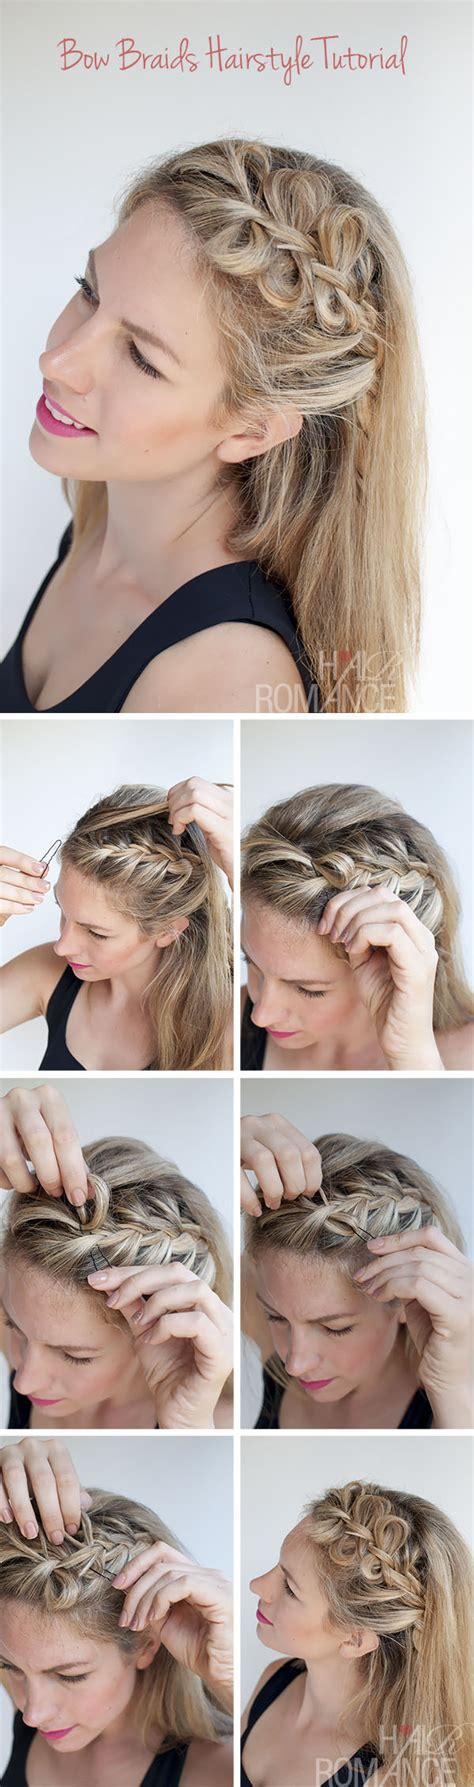 braids hairstyles how to do craftionary